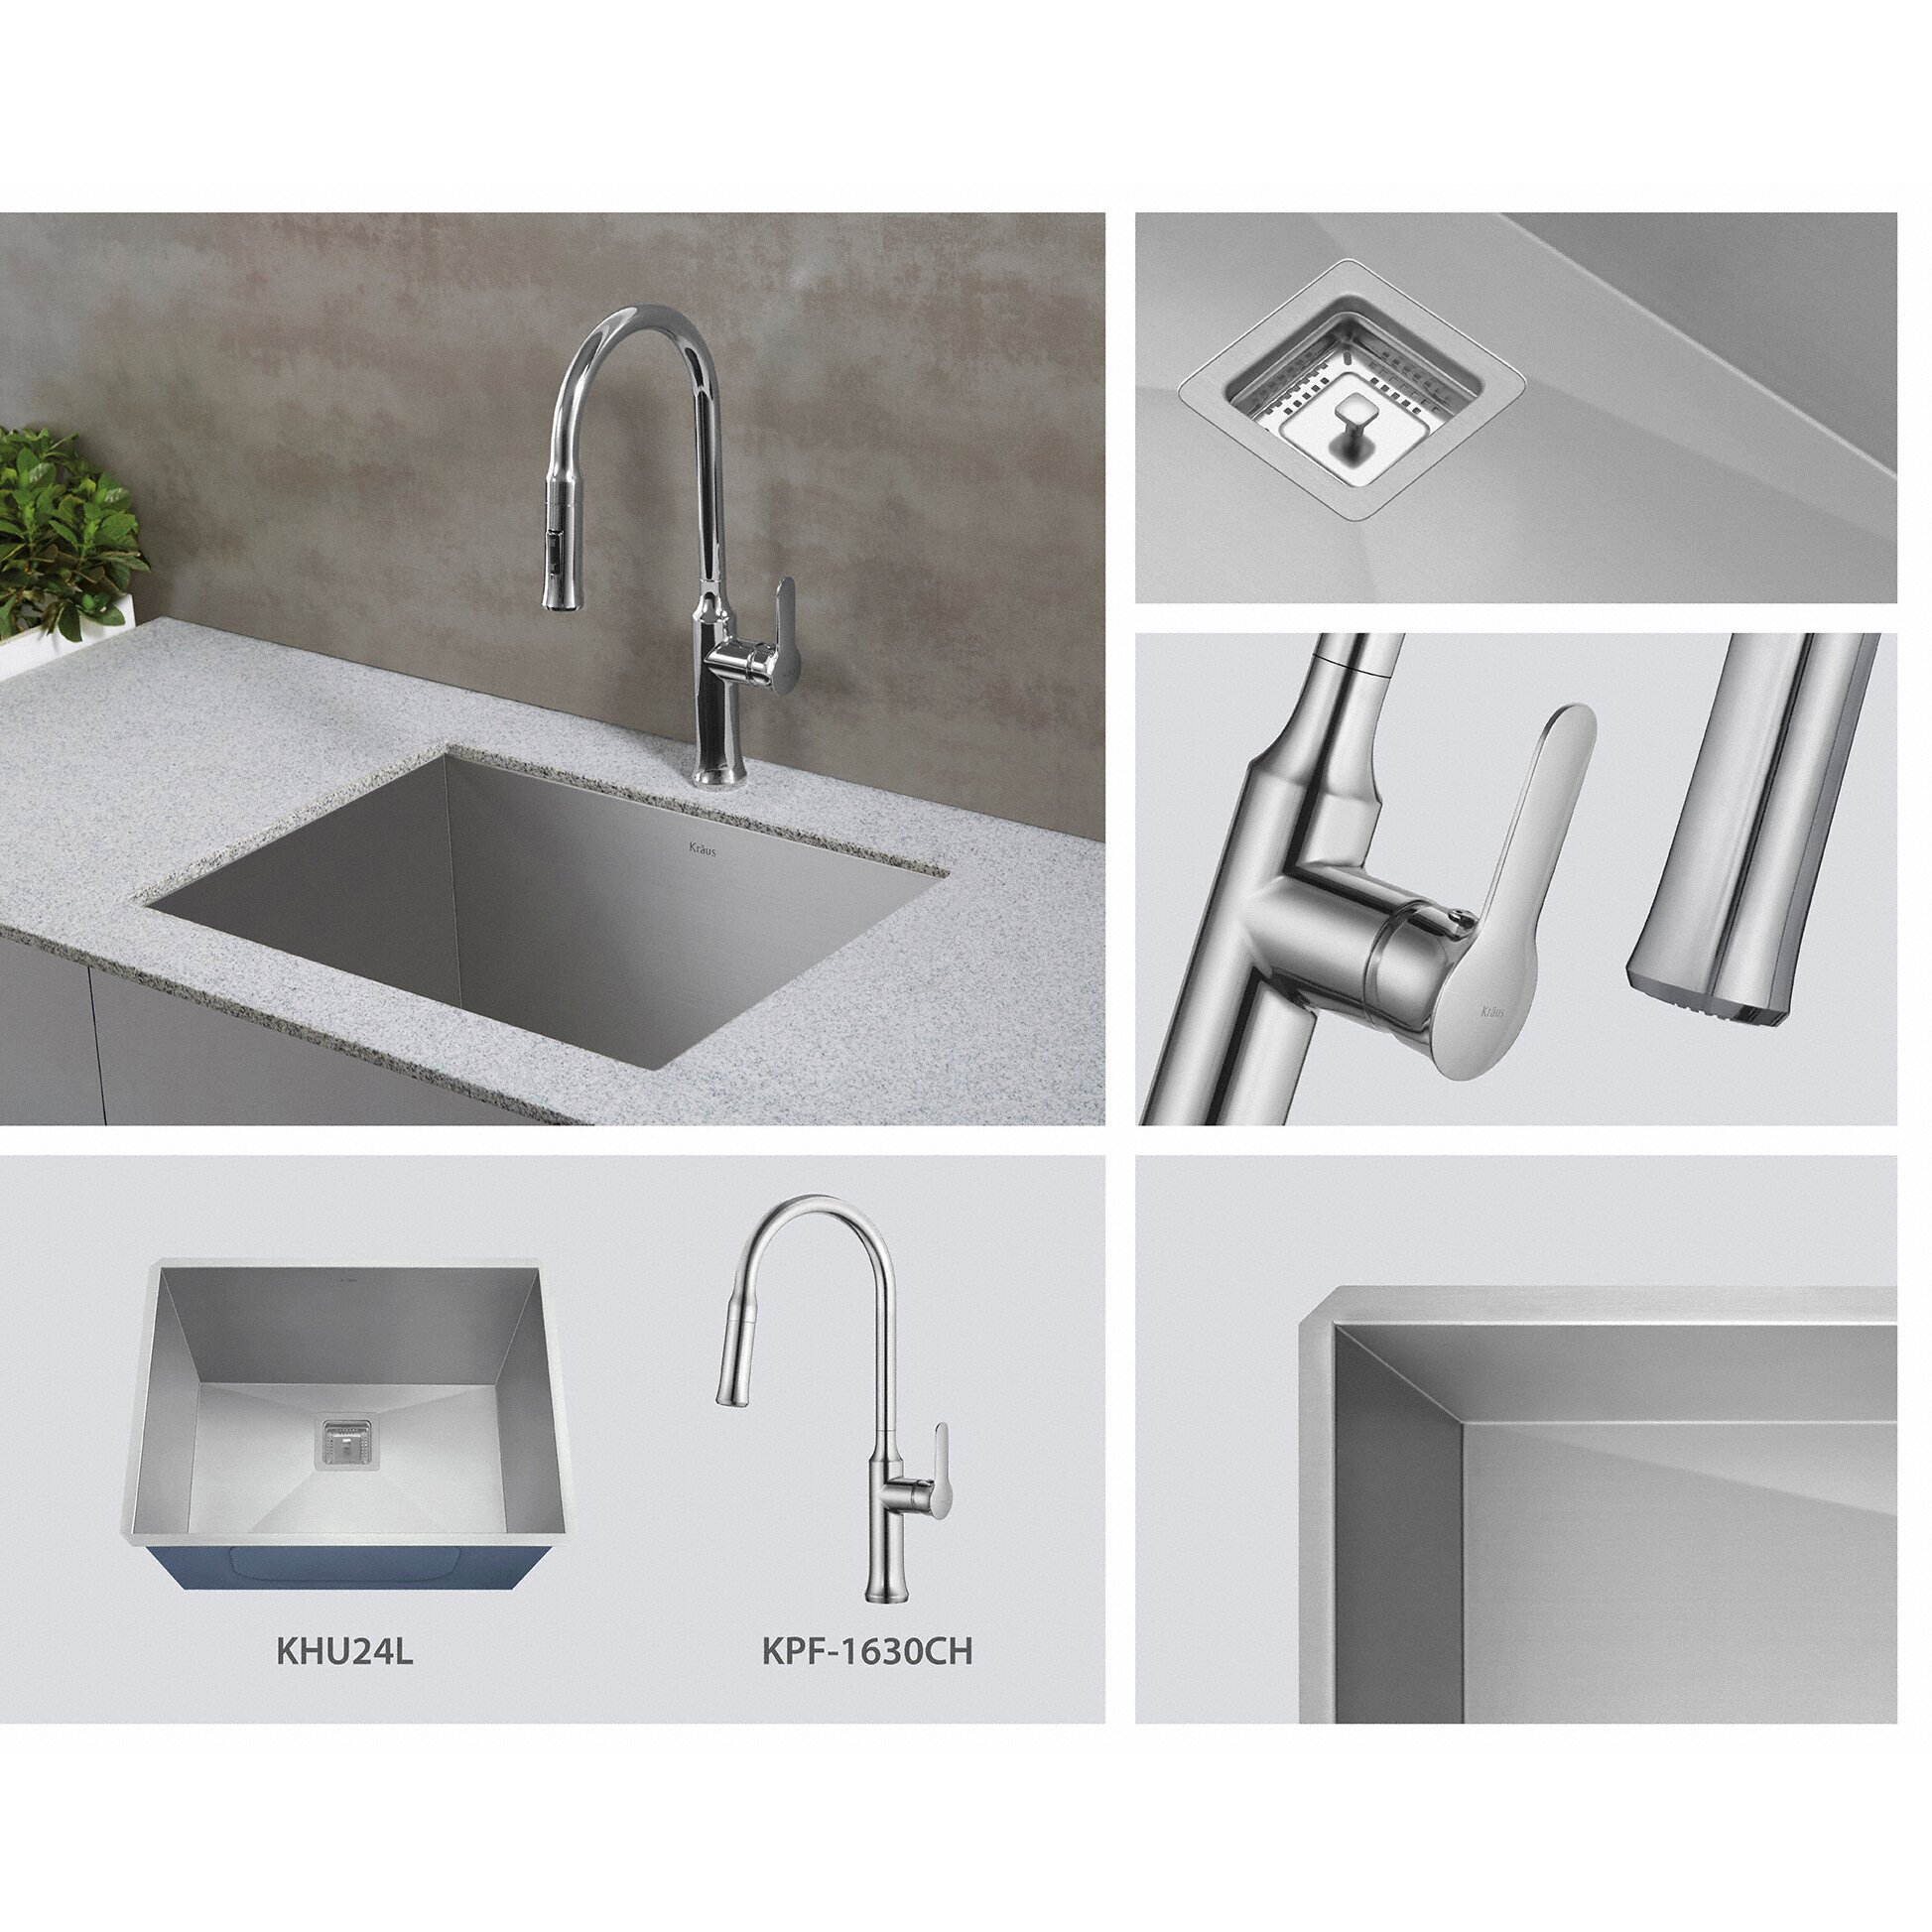 Undermount Stainless Steel Utility Sink : ... Undermount Single Bowl Stainless Steel Laundry and Utility Sink by